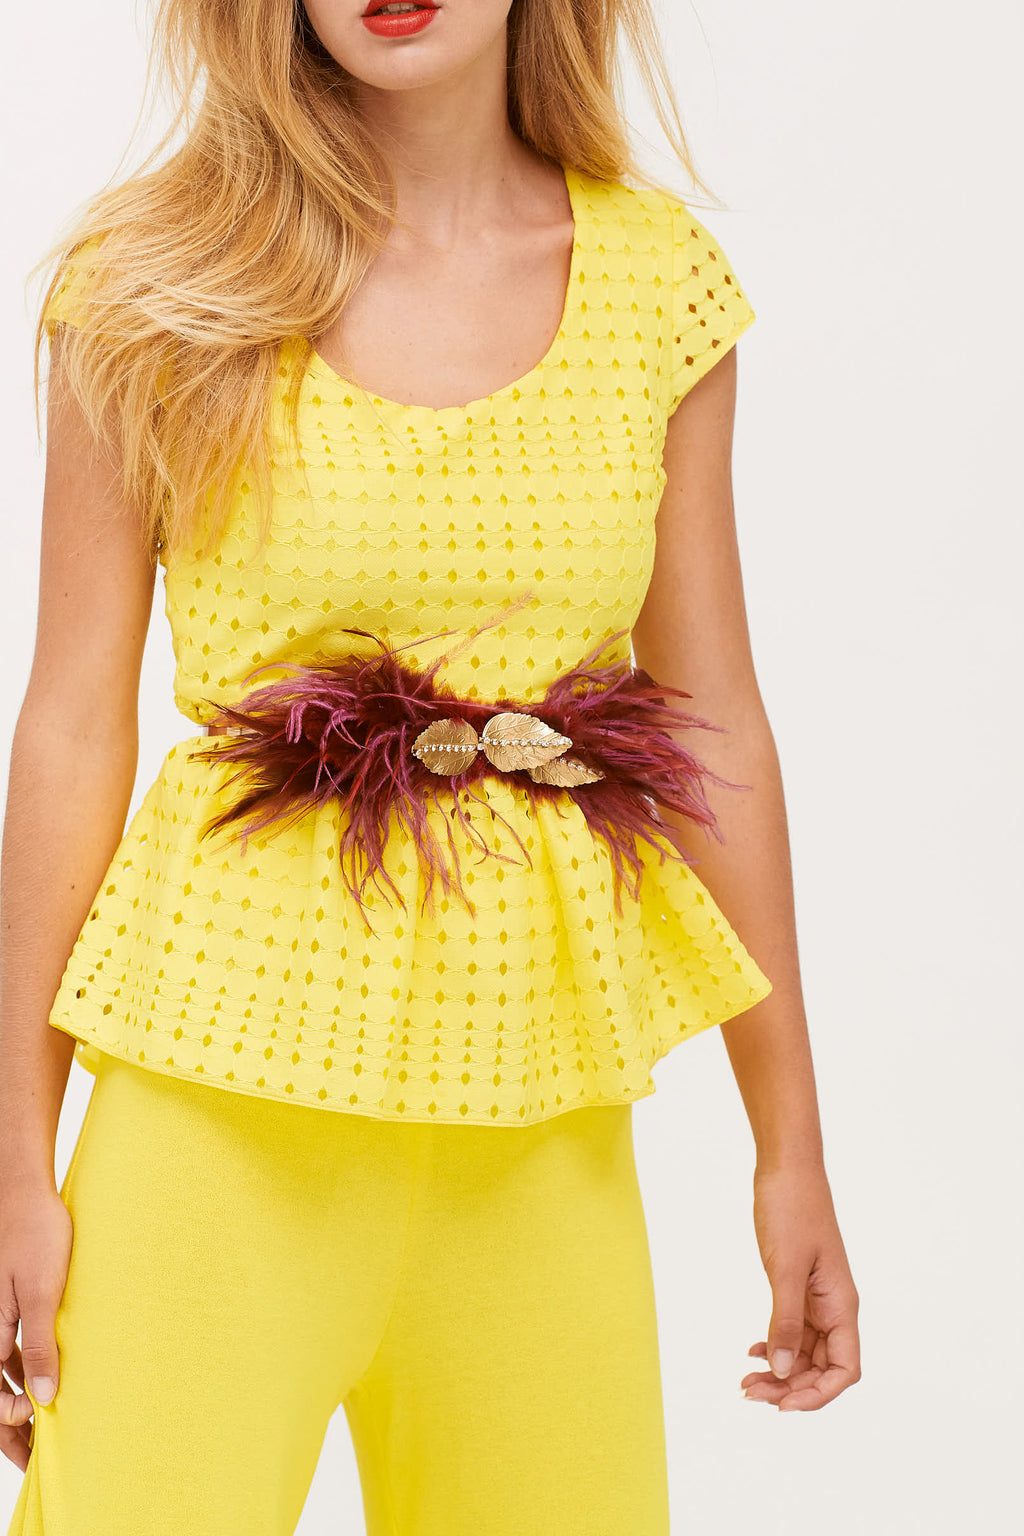 Filomena Yellow Top, ideal for any occasion.